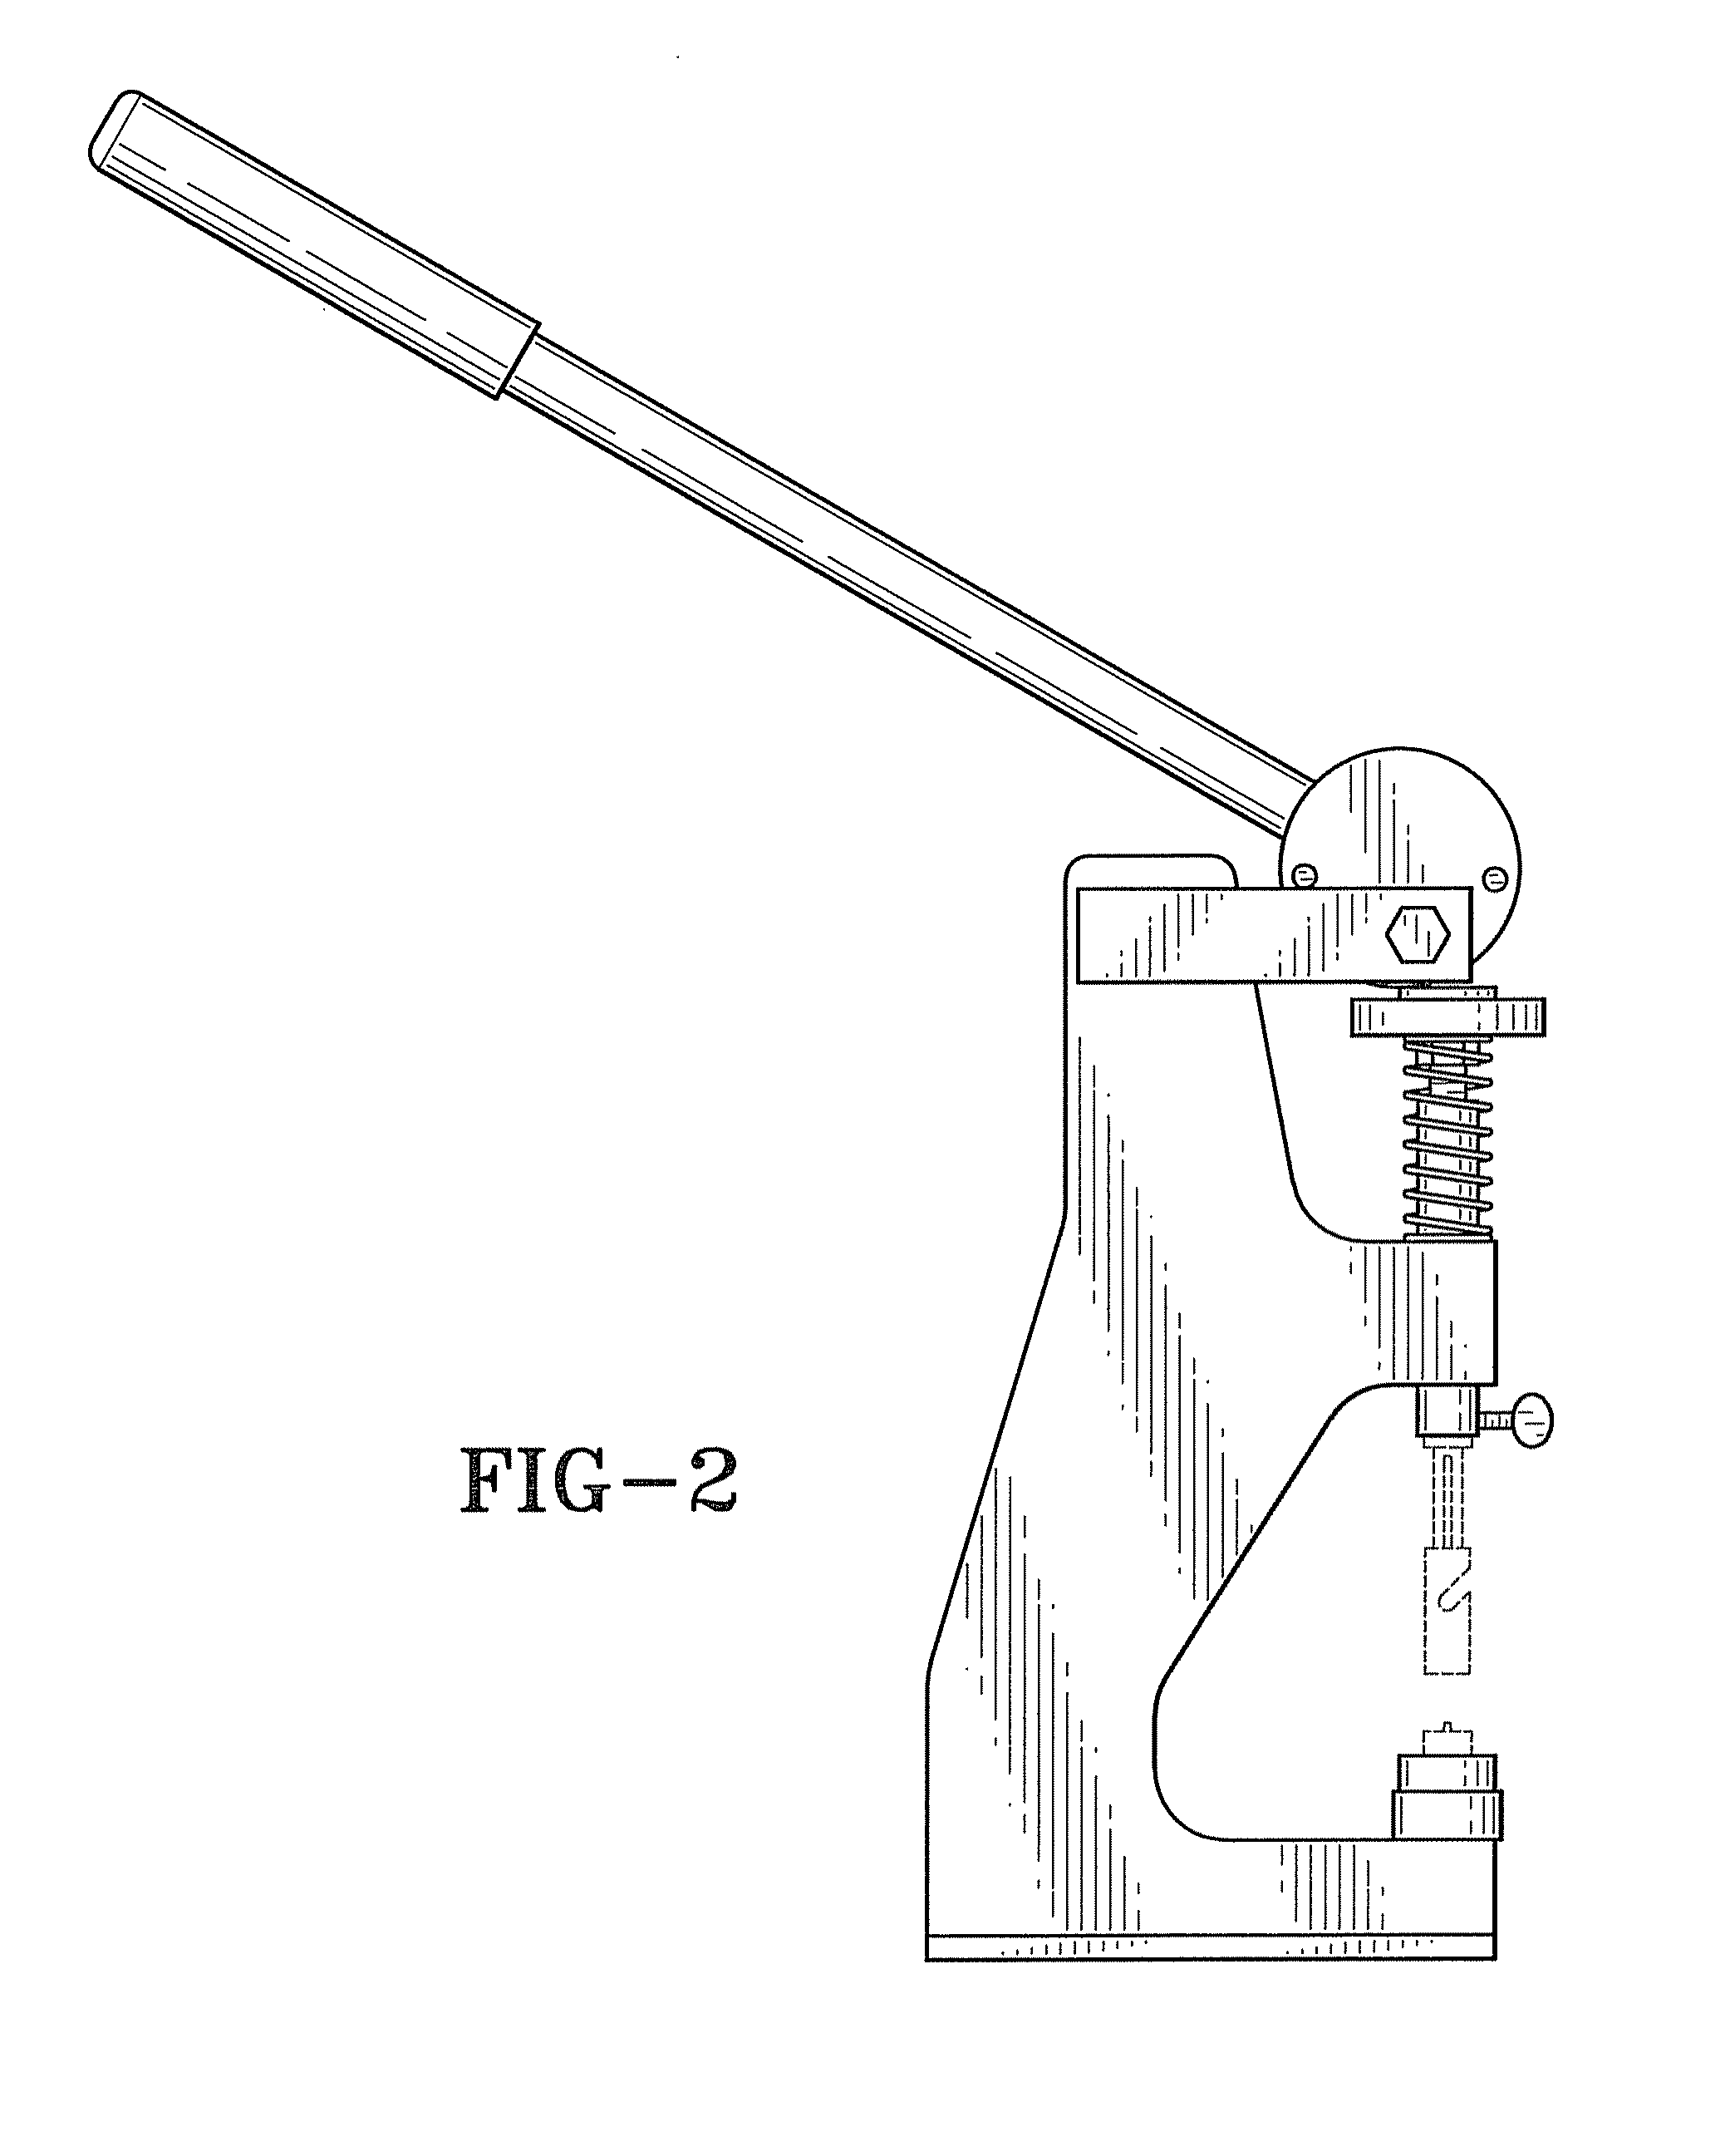 patent usd632318 - bench riveter - google patents